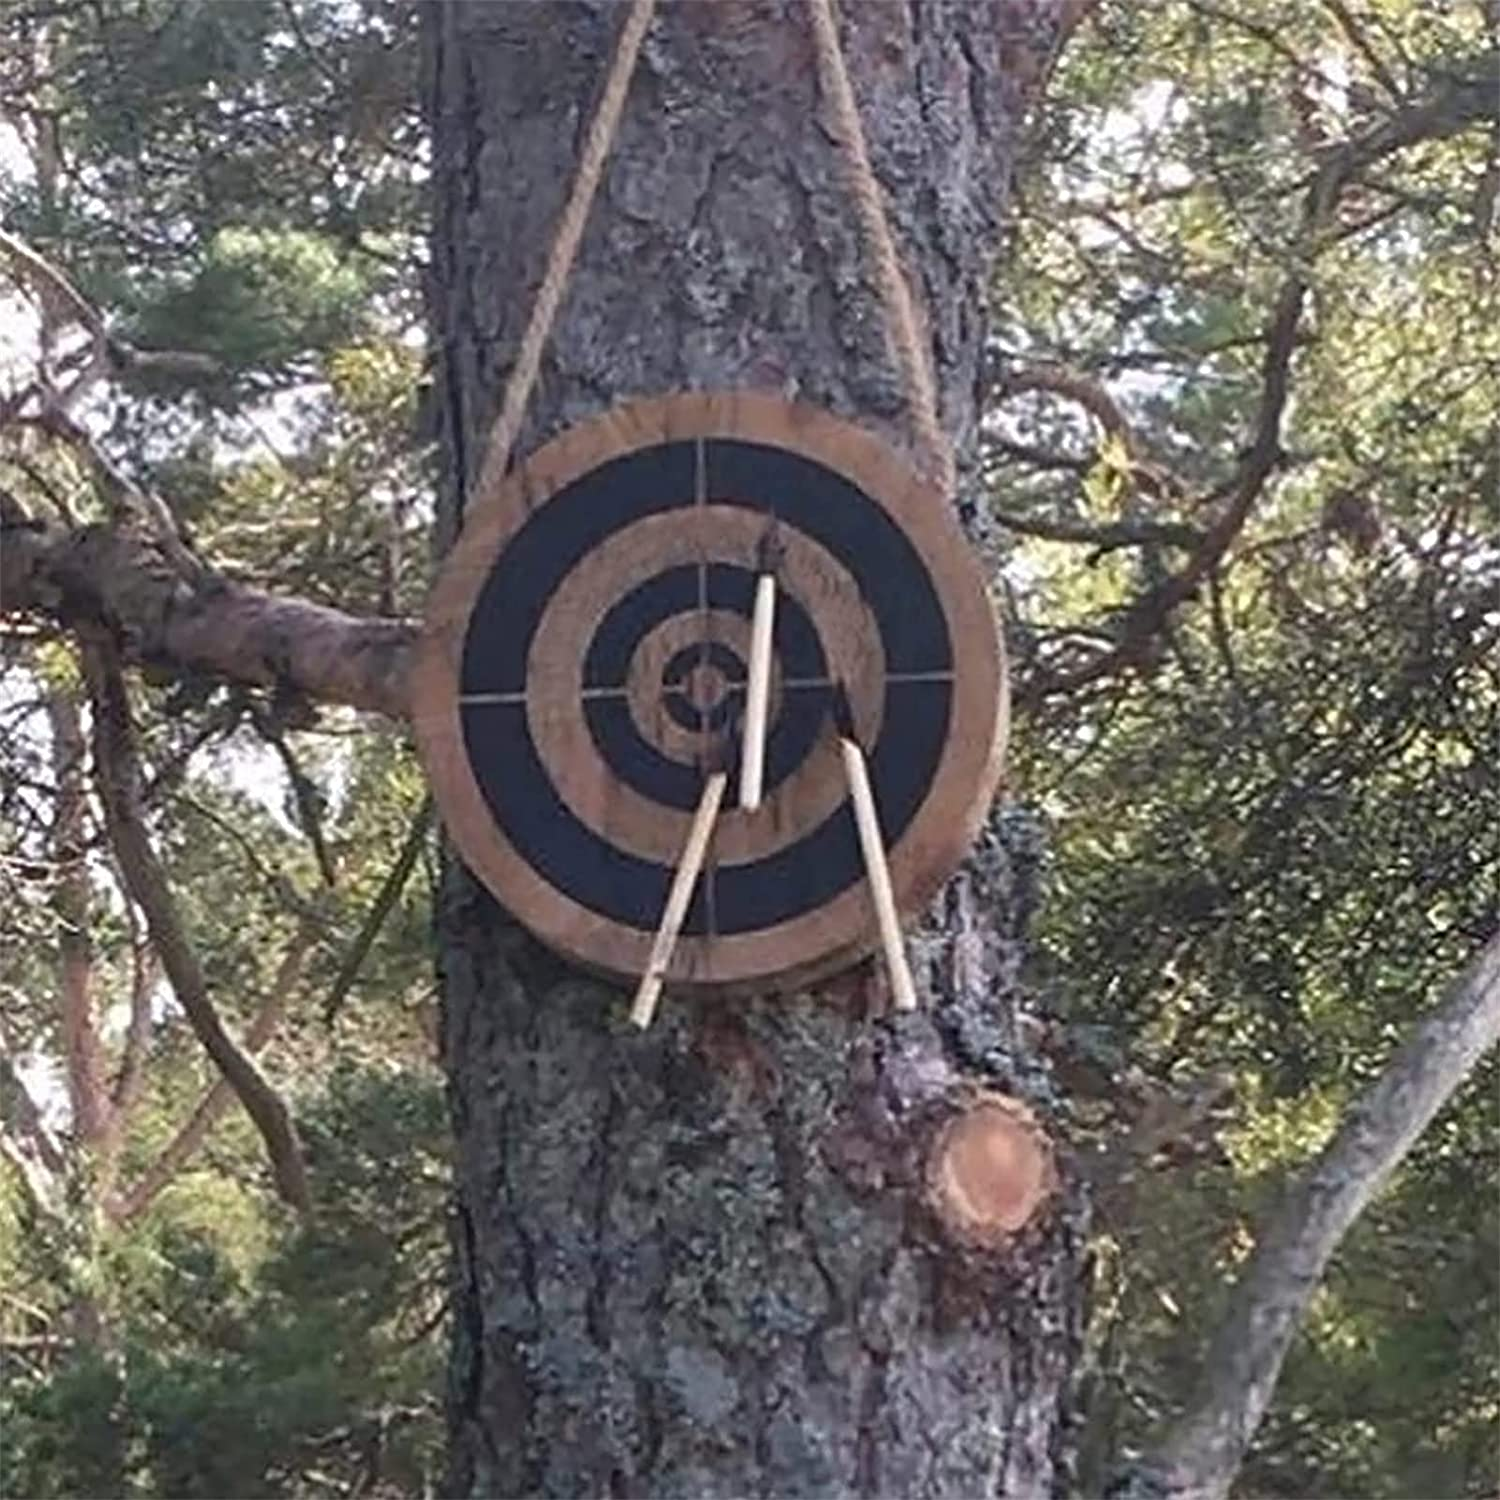 PENGLEI Wooden Target Plate Set, Small Axe Throwing Game, Outdoo